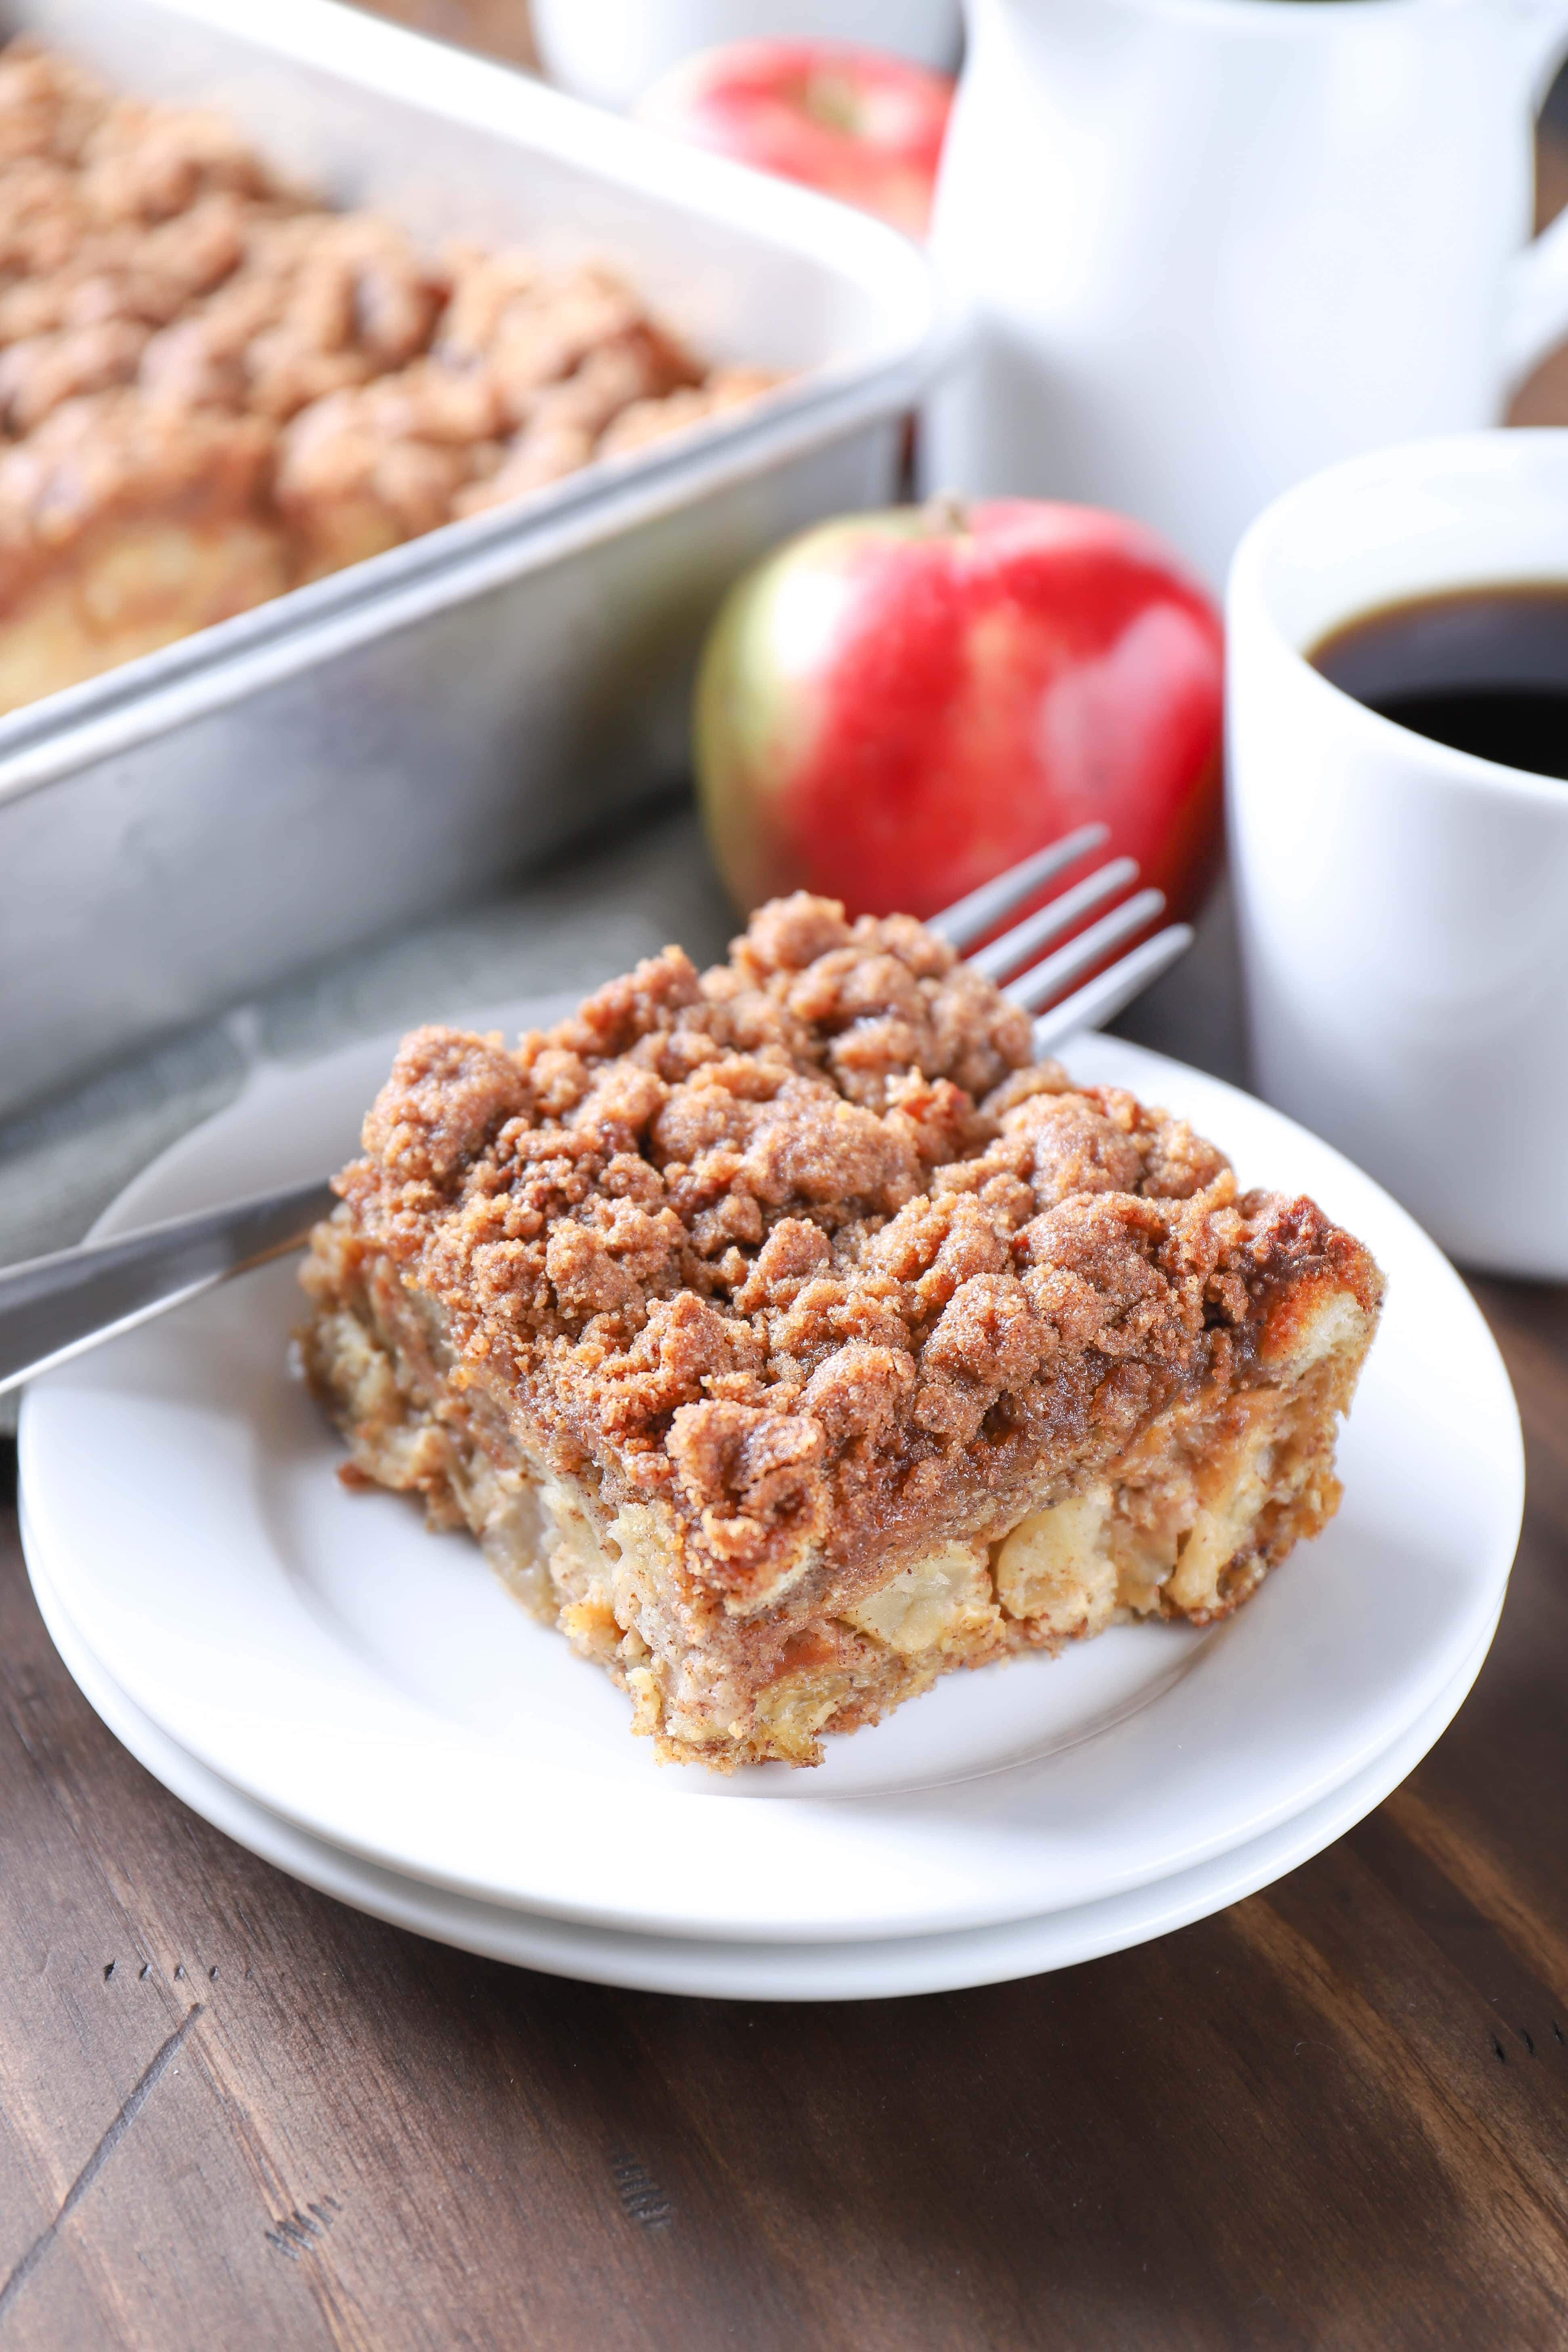 Slice of Apple Streusel French Toast Bake on a plate without syrup. Recipe from A Kitchen Addiction